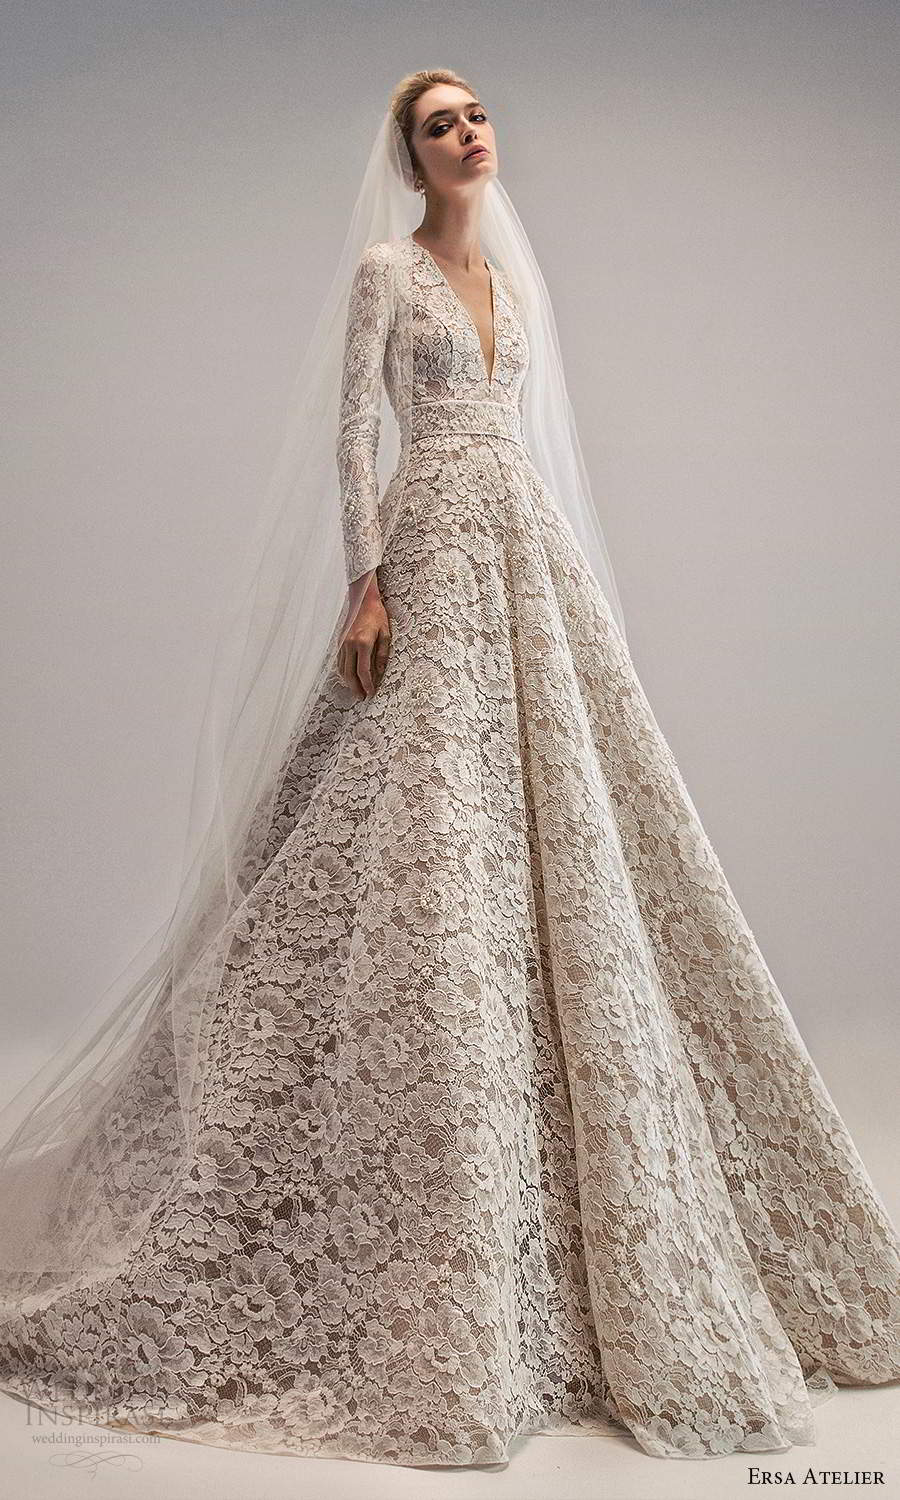 ersa atelier spring 2021 bridal long sleeves plunging neckline fully embellished lace a line ball gown wedding dress chapel train (17) mv